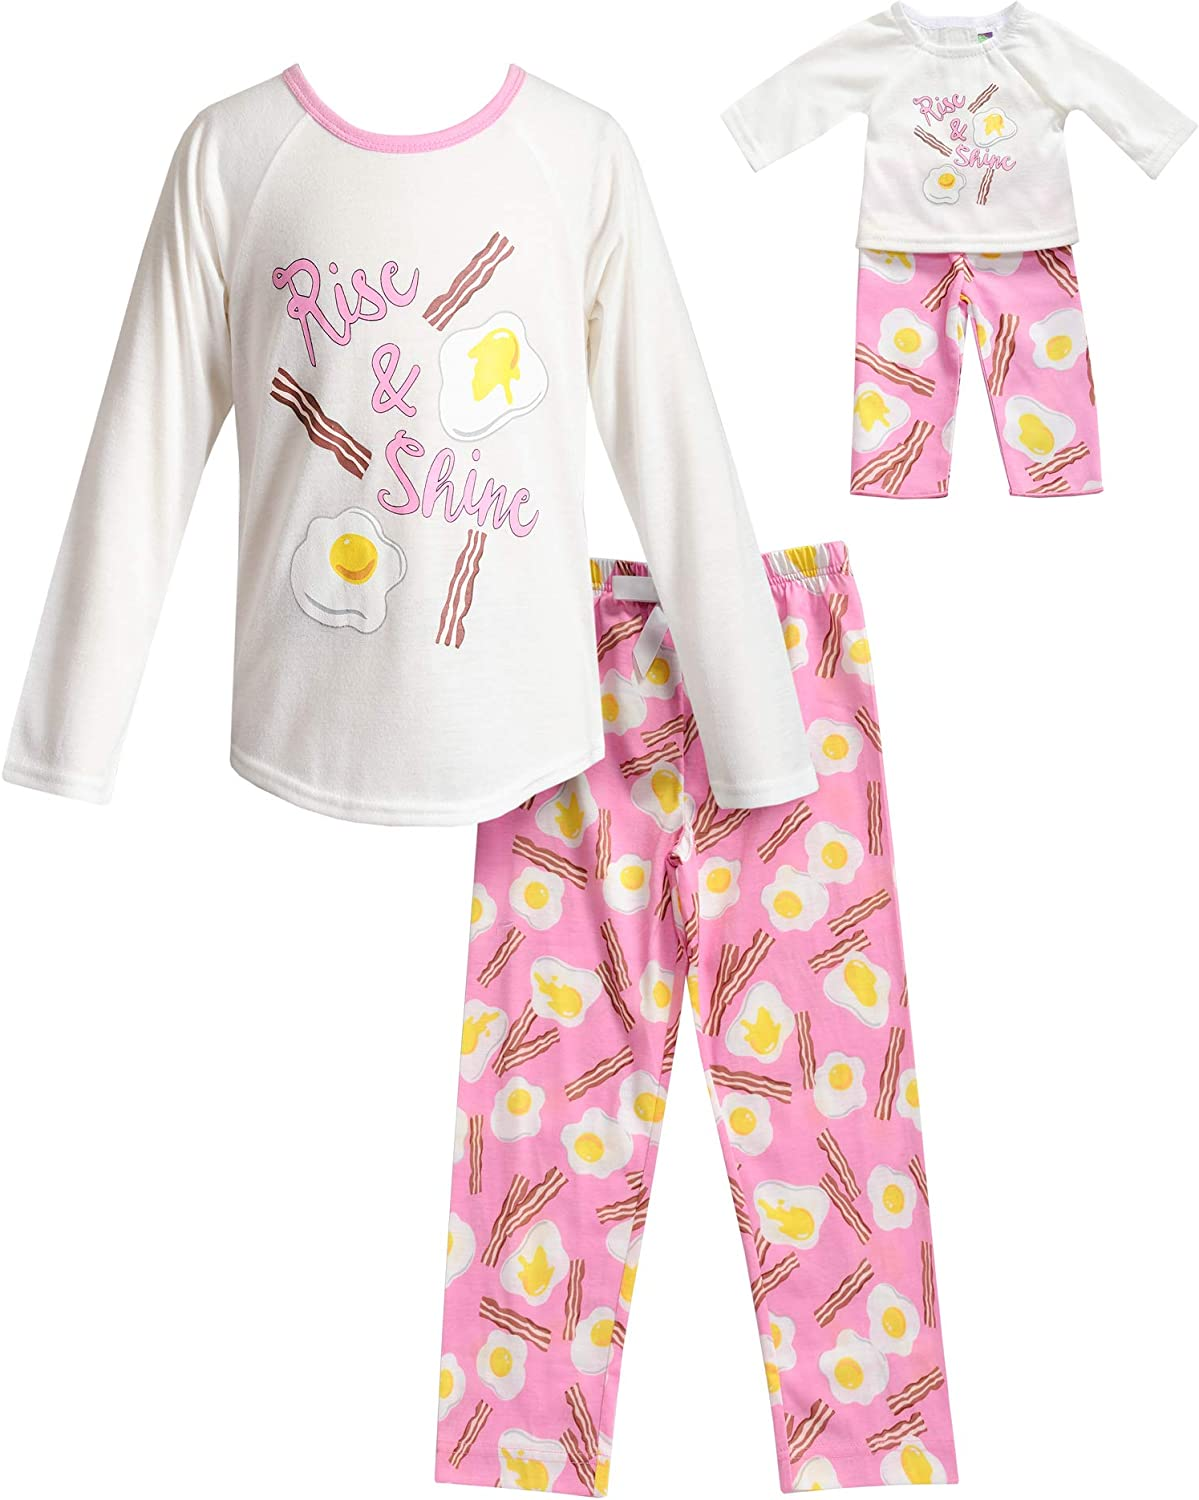 Doll /& Me PJ Sets Choose Design Pink Matching Pajamas for Girl and Dolly  Fitted PJ/'s